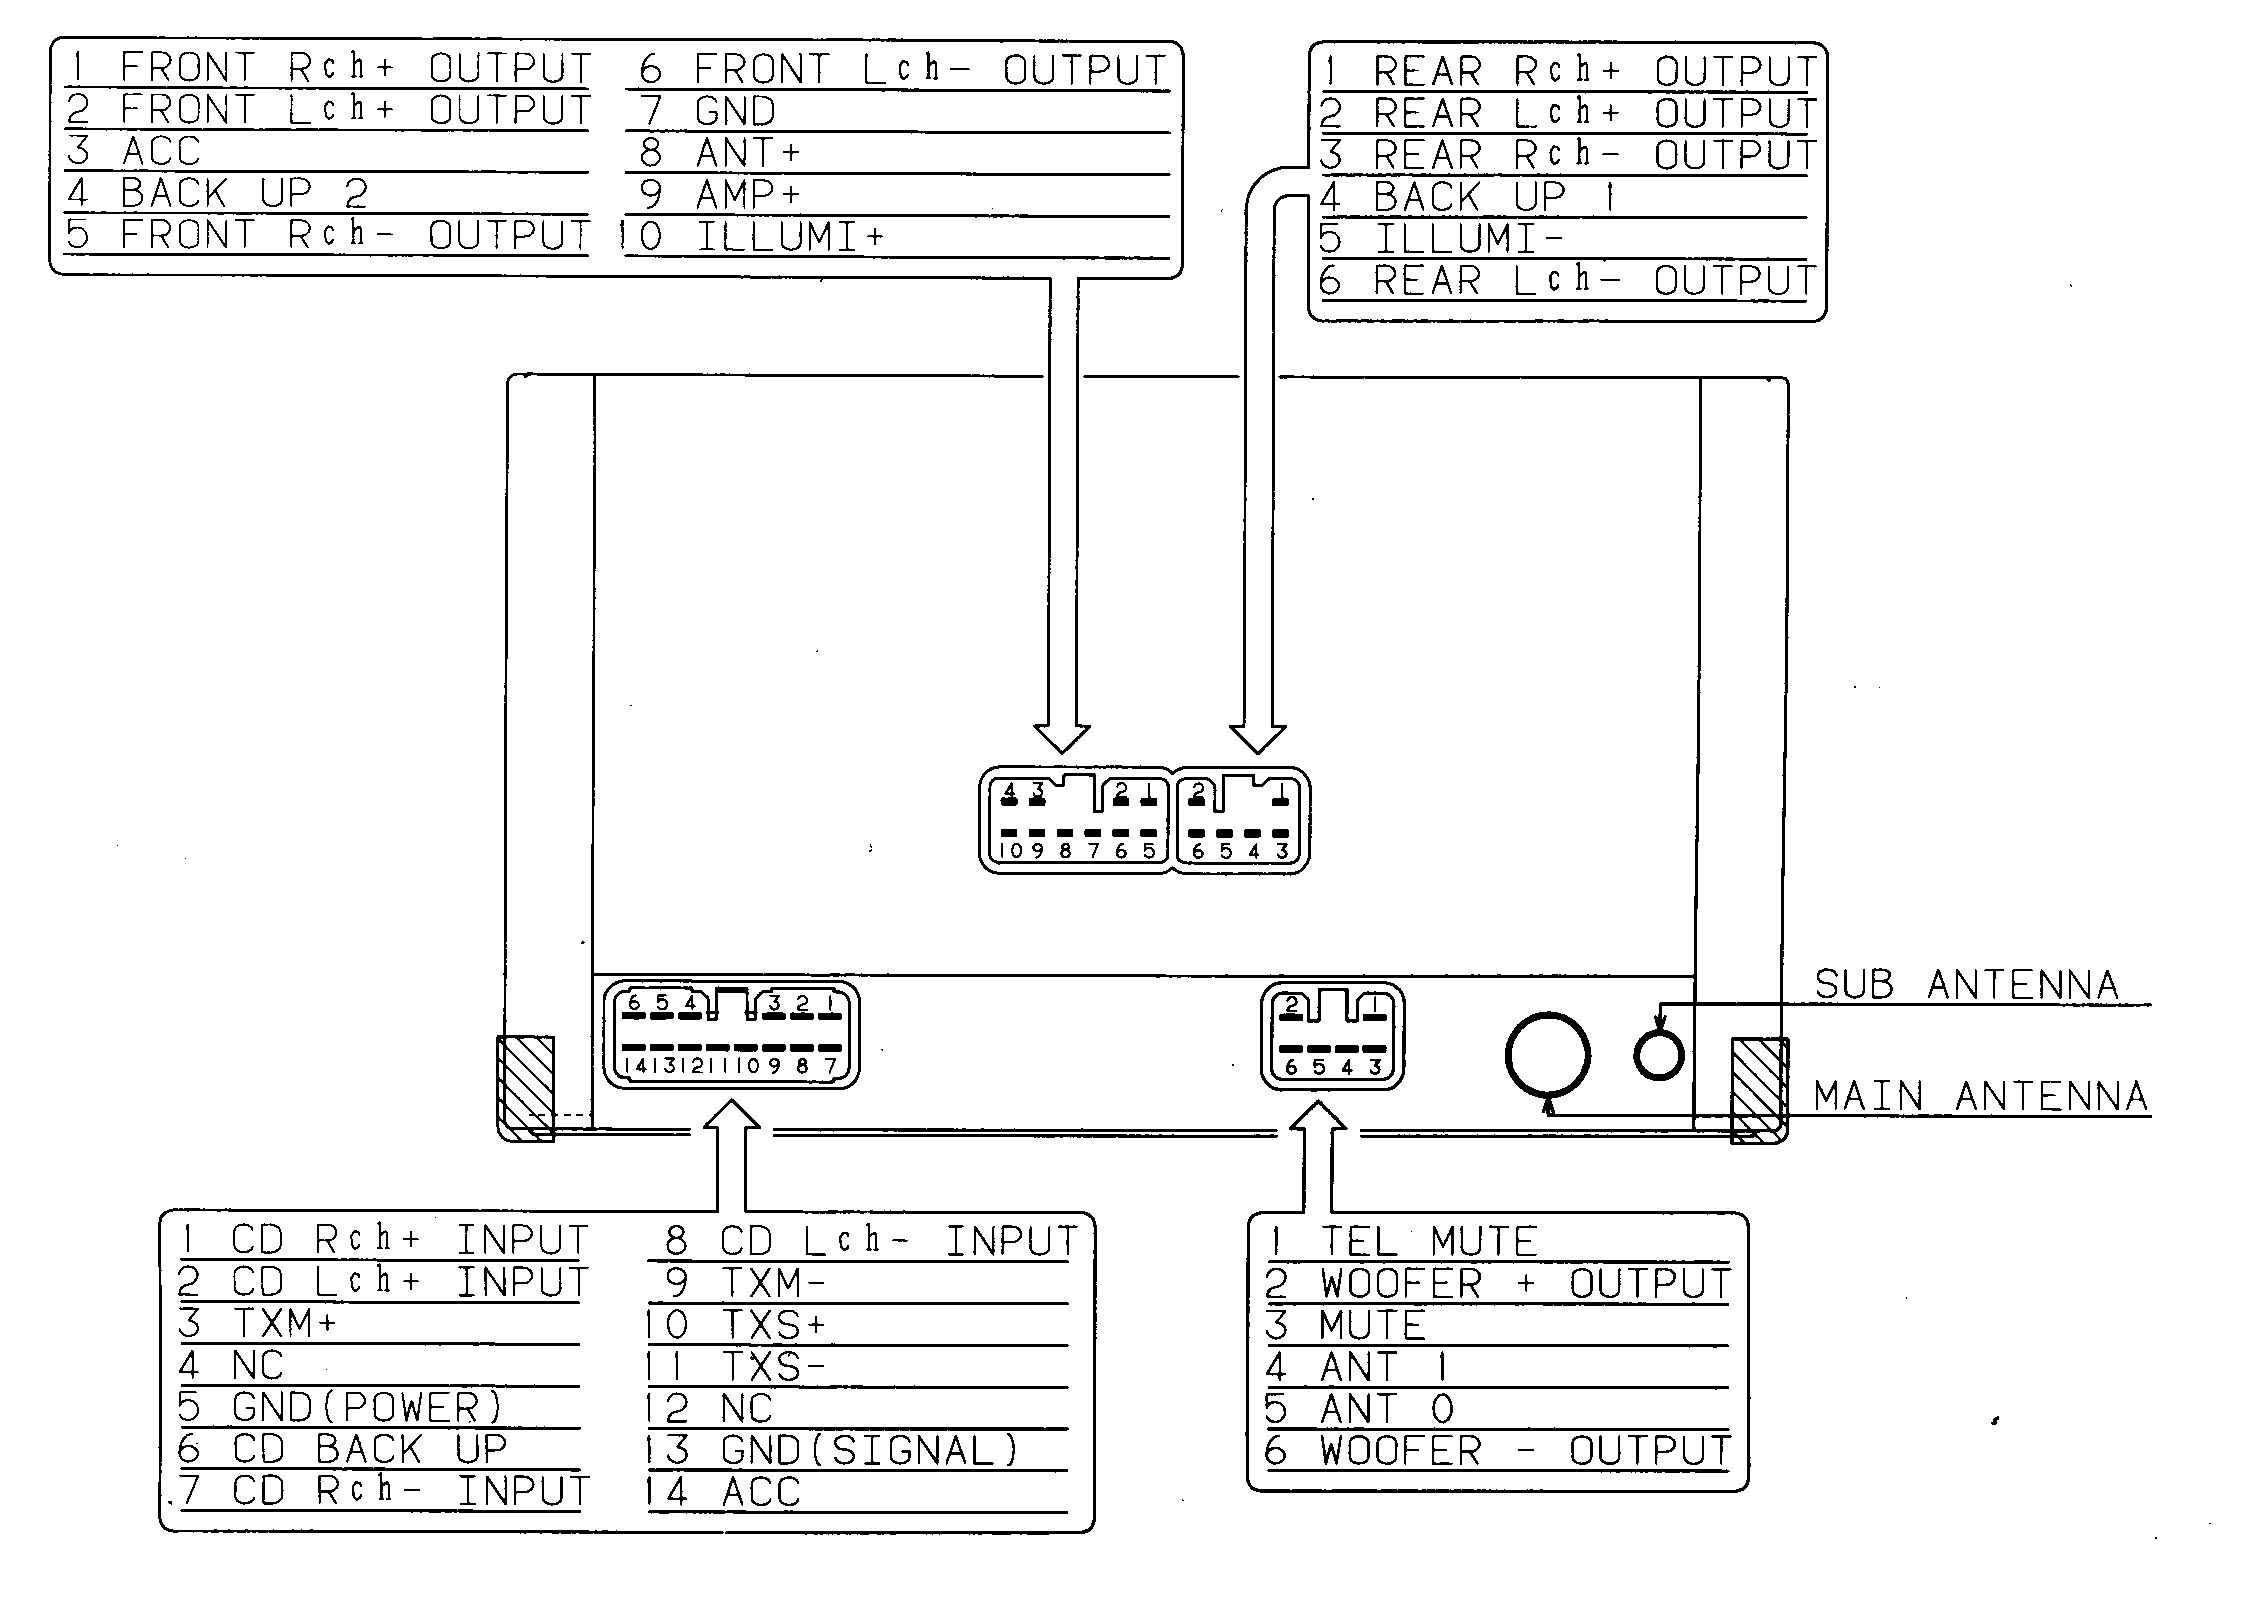 Mitsubishi Infinity Radio Amp Wiring Diagram Free Speaker Circuit Diagrams Rh 17 53 Aspire Atlantis De 2001 Eclipse 2004